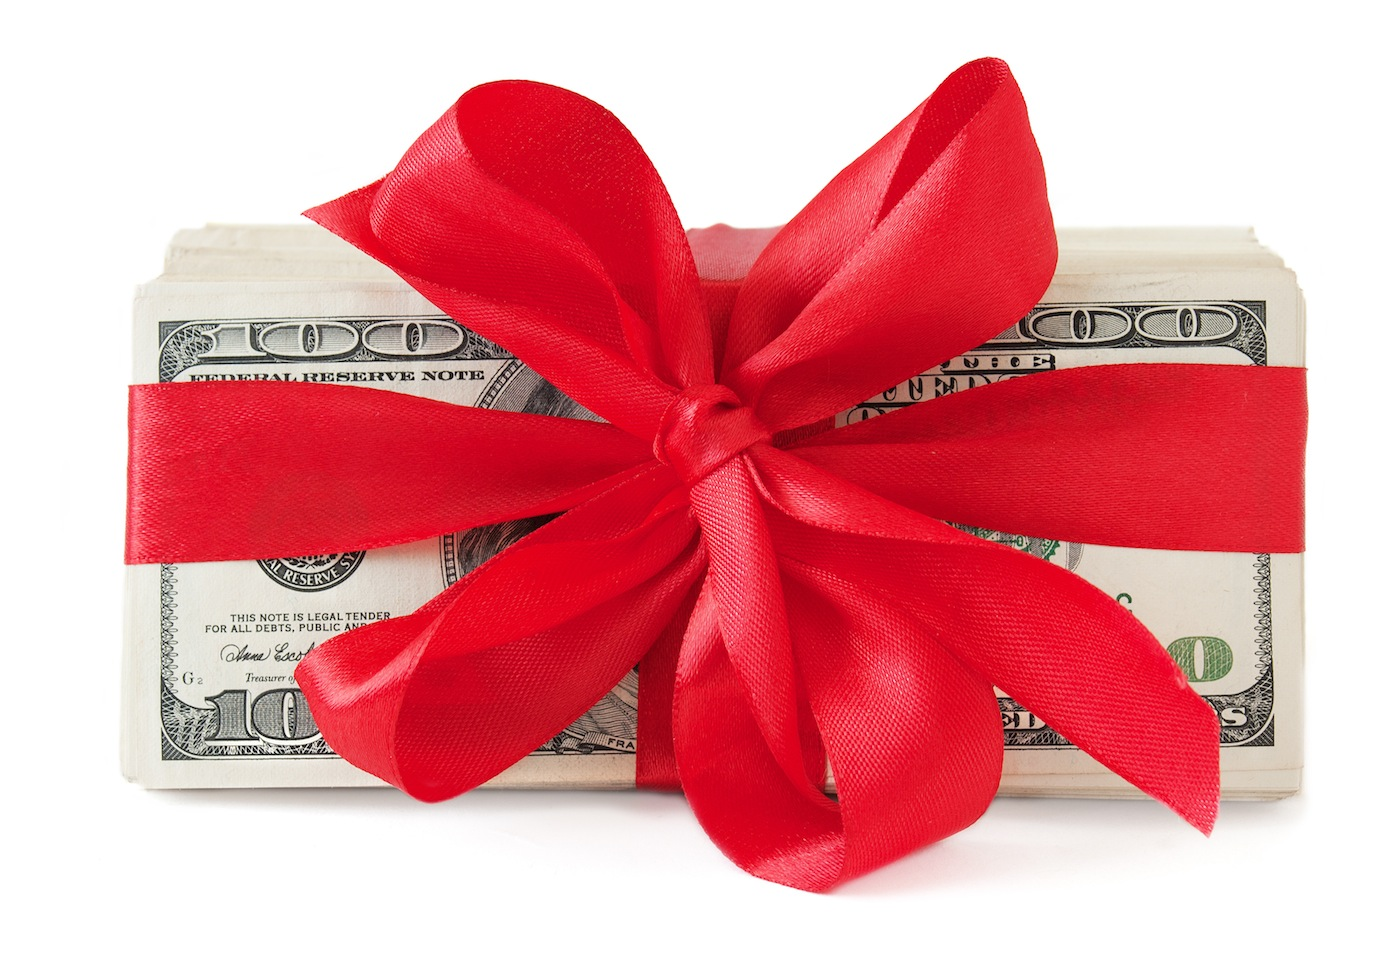 Holiday Event Planning Tips for Cutting the Costs yet Keeping the Cheer